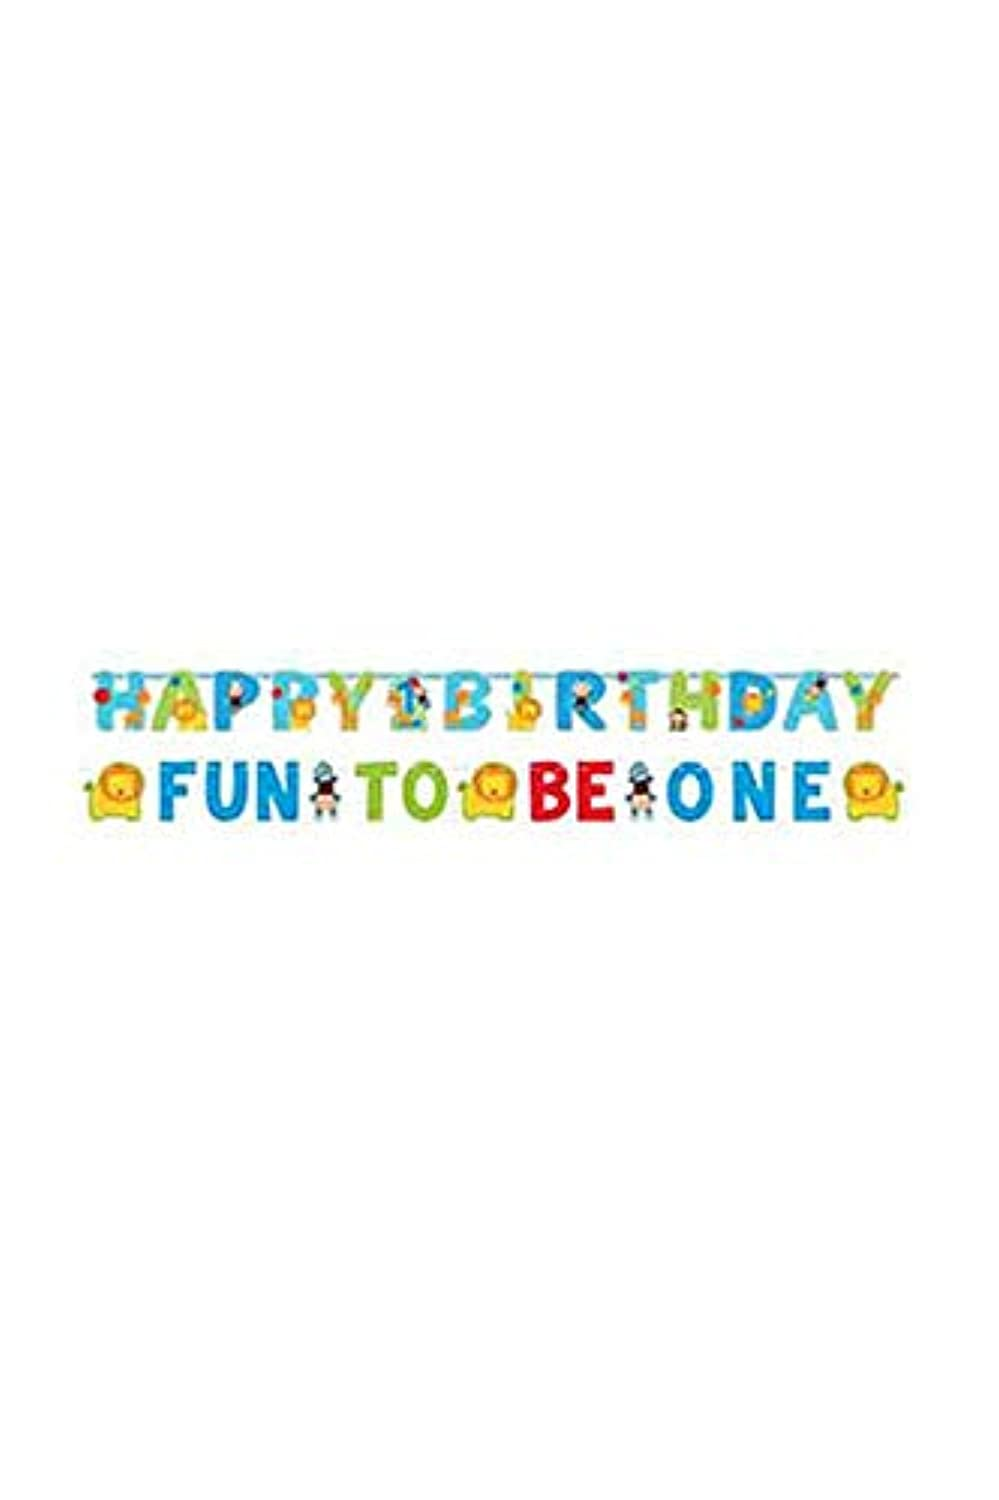 amscan One Wild Boy Birthday Party Jumbo Letter Banner Kit Decoration, Multi Colored, Paper, Assorted Sizes, 8-Piece